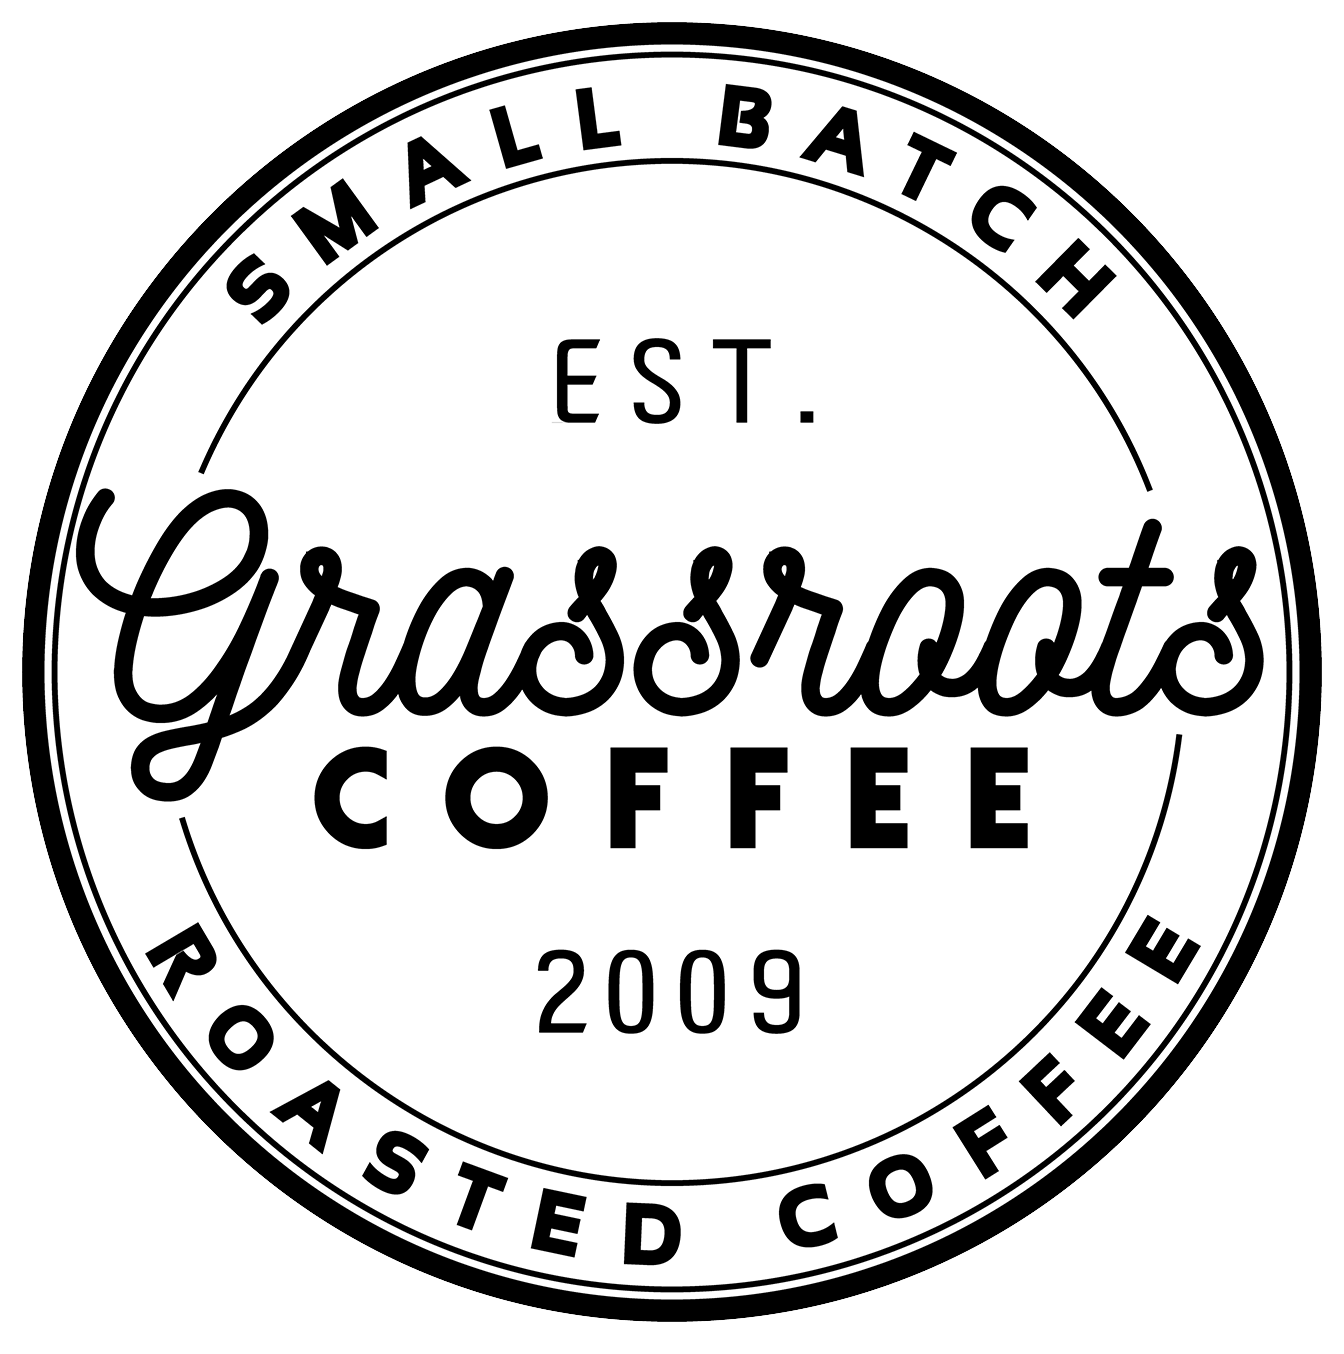 Grassroots Gift Card Grassroots Coffee Company